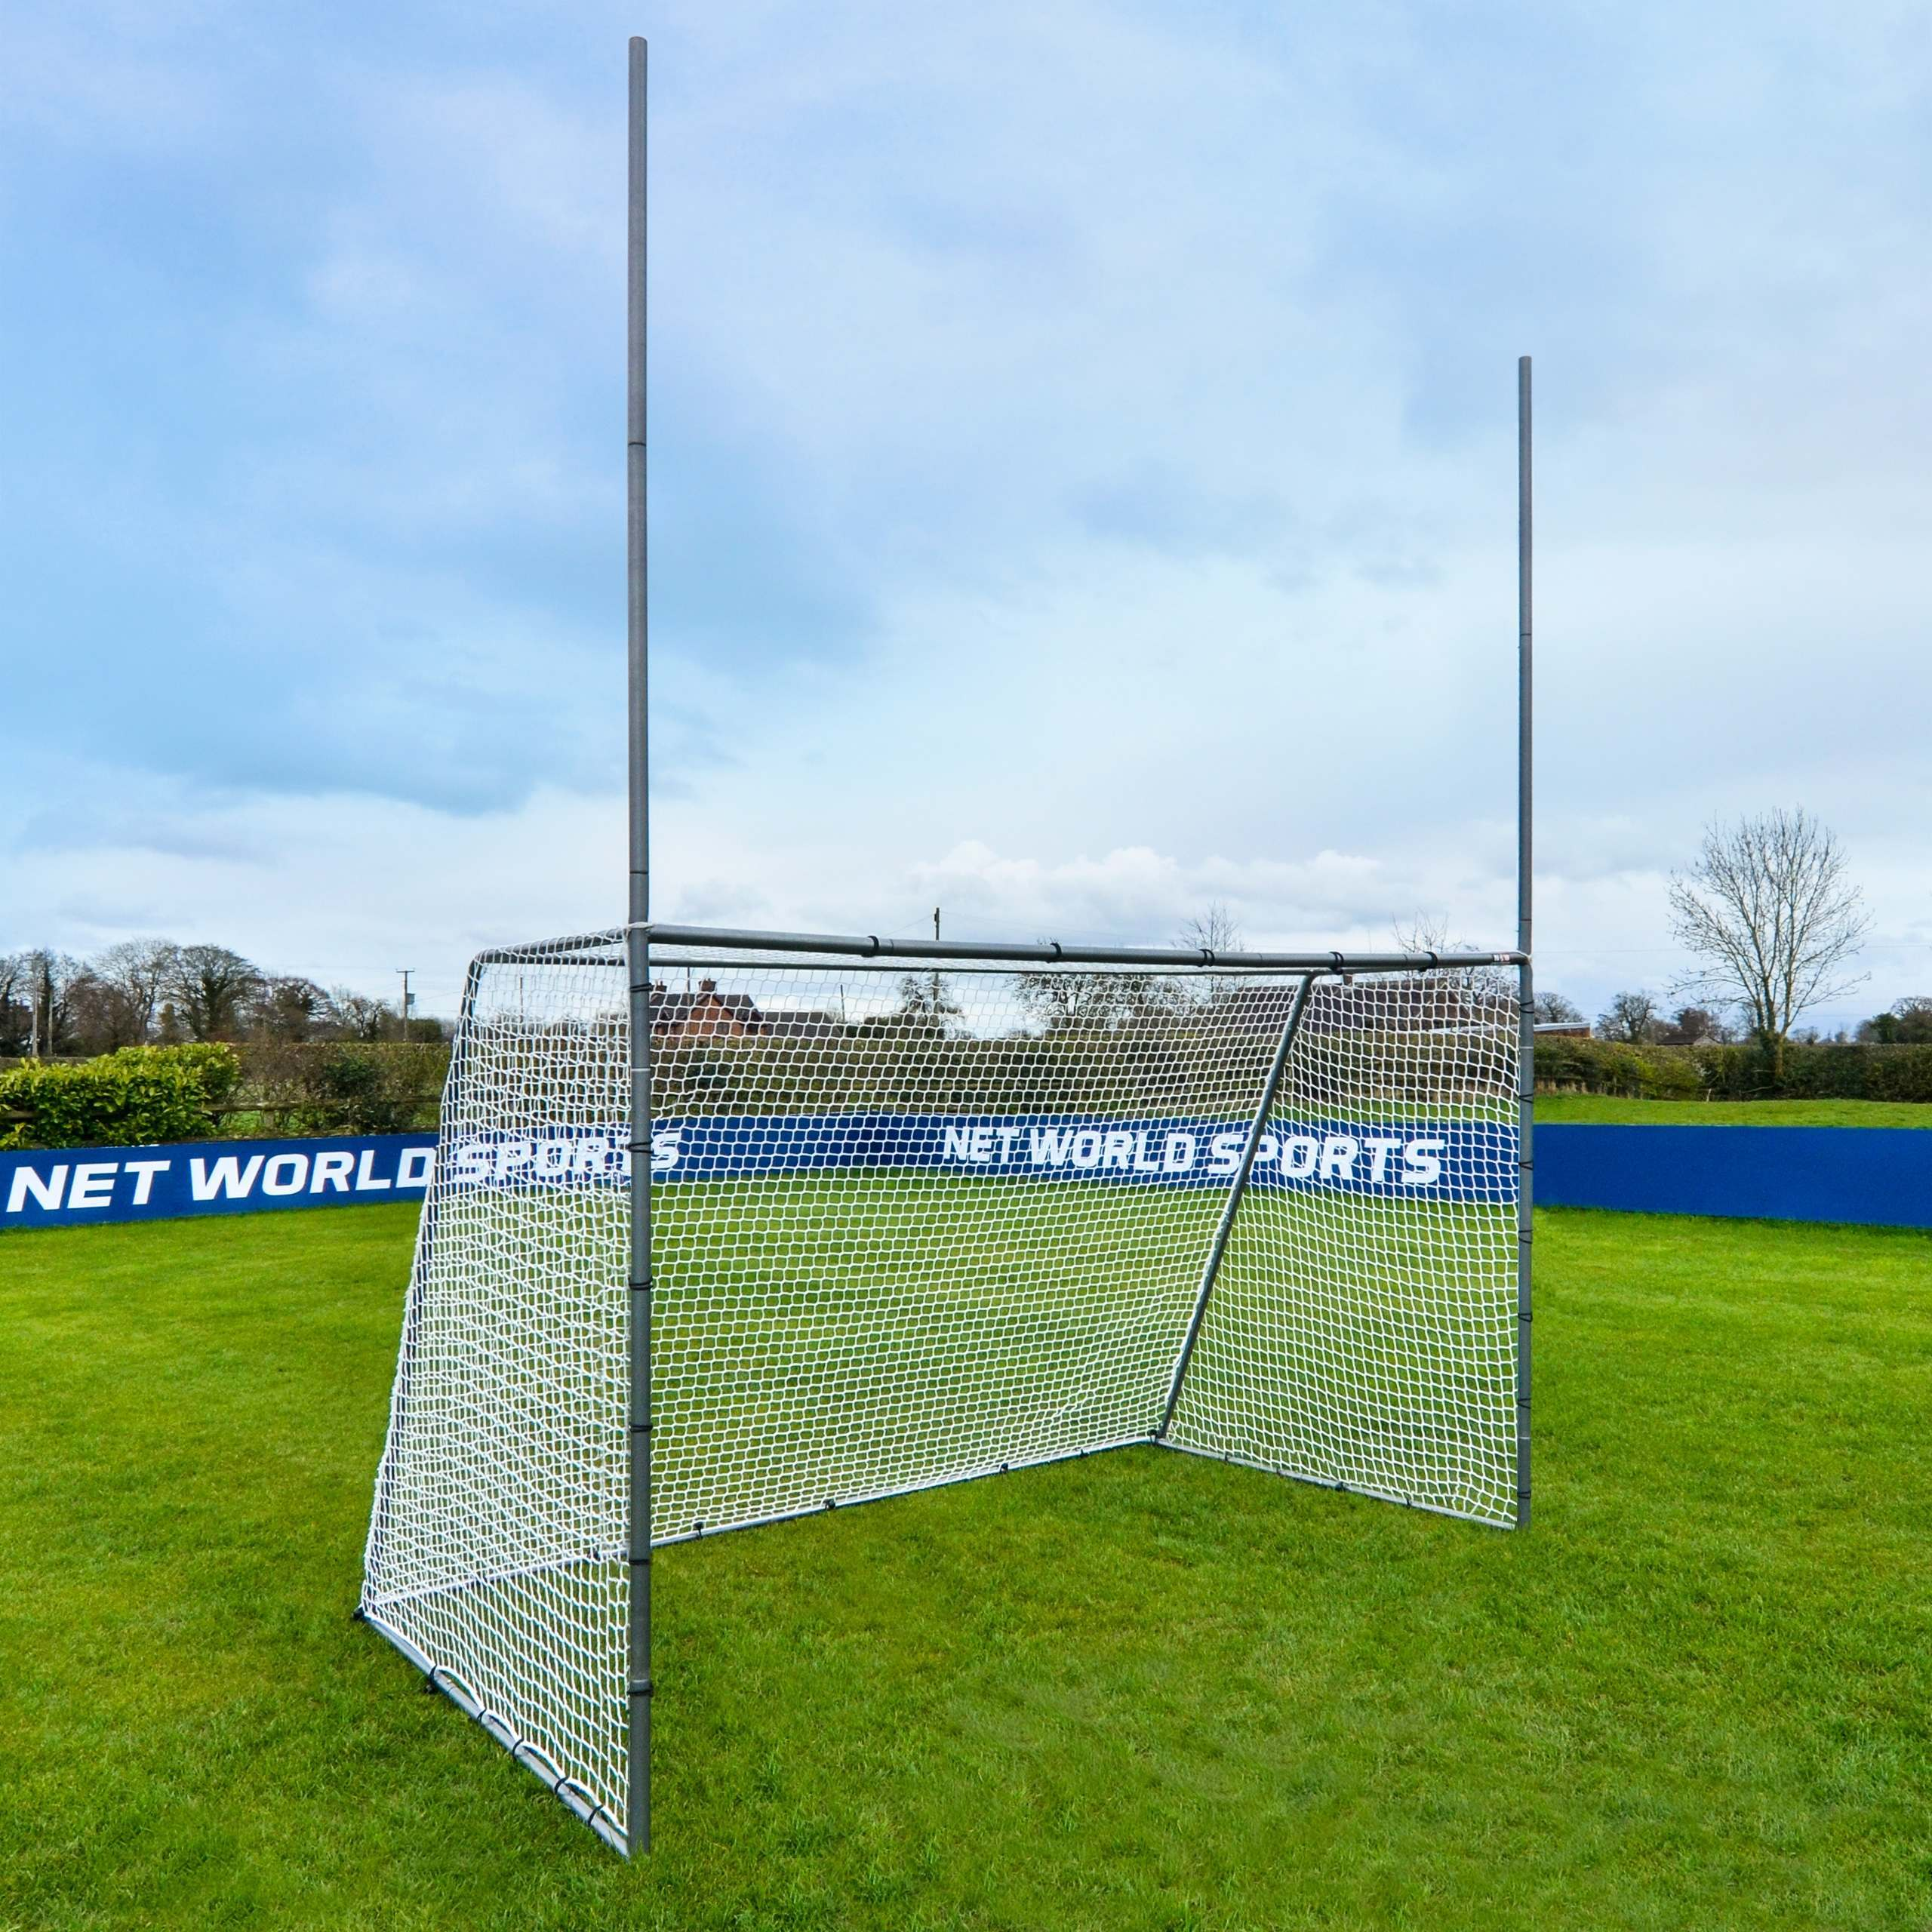 10 x 6 FORZA Steel42 Combi Rugby & Football Goal Posts